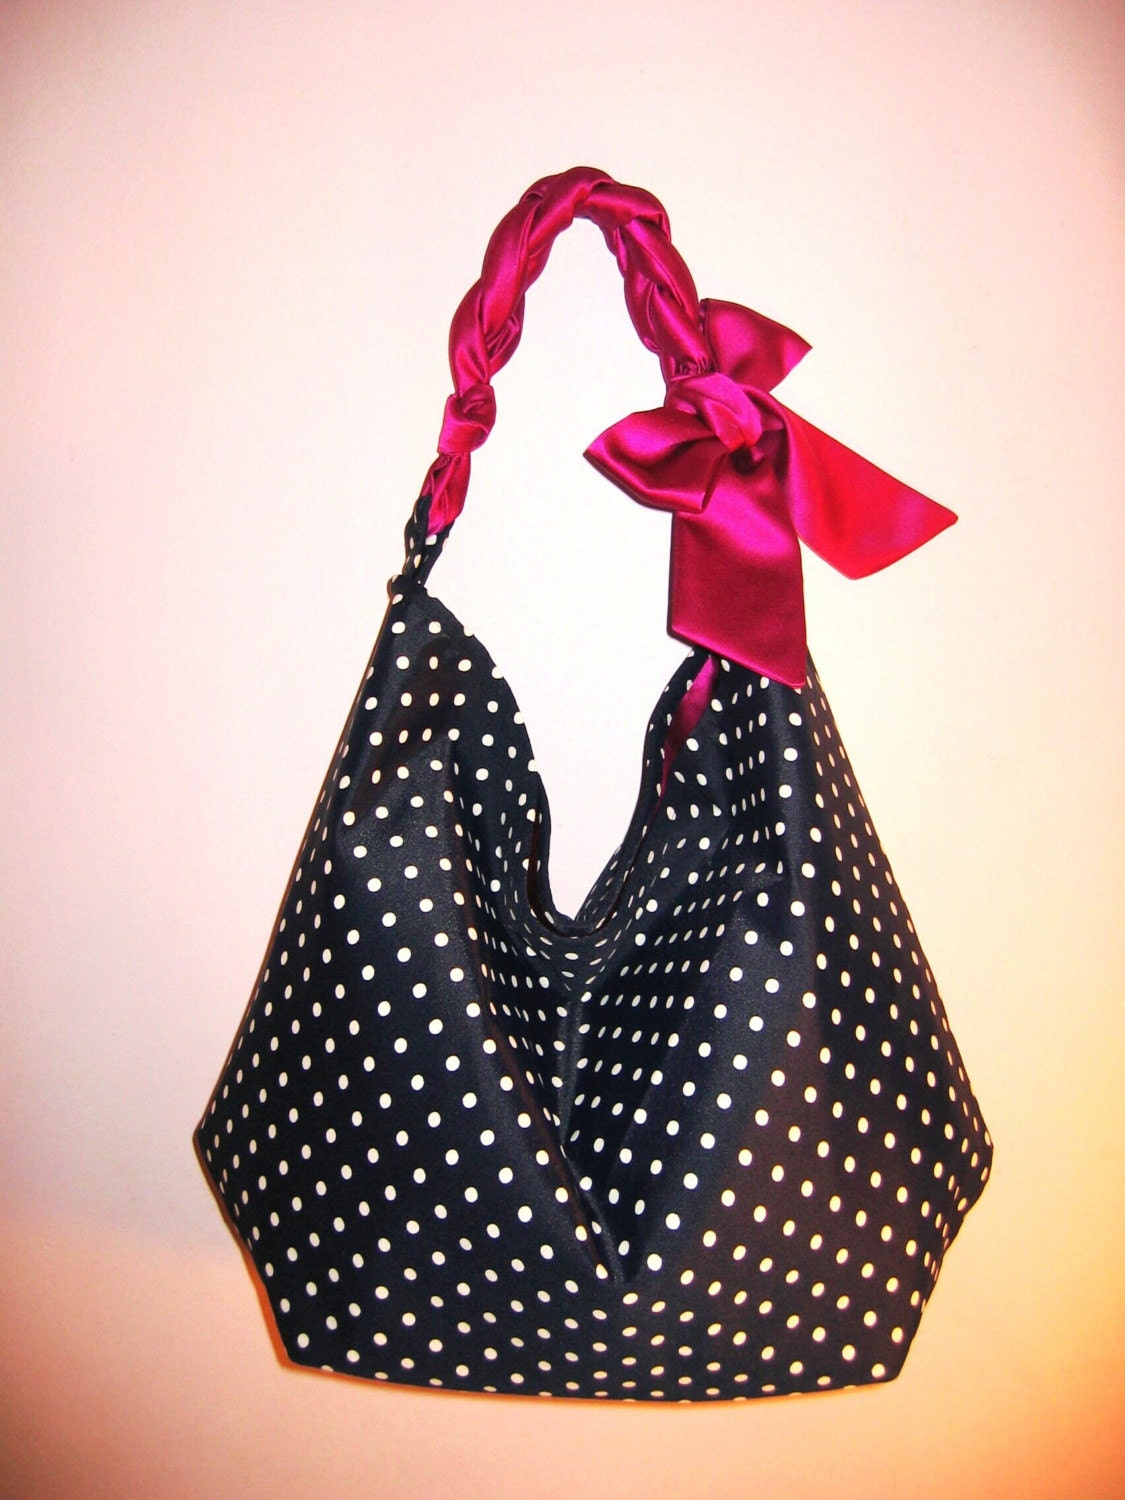 angie tote in navy blue with white dots with magenta